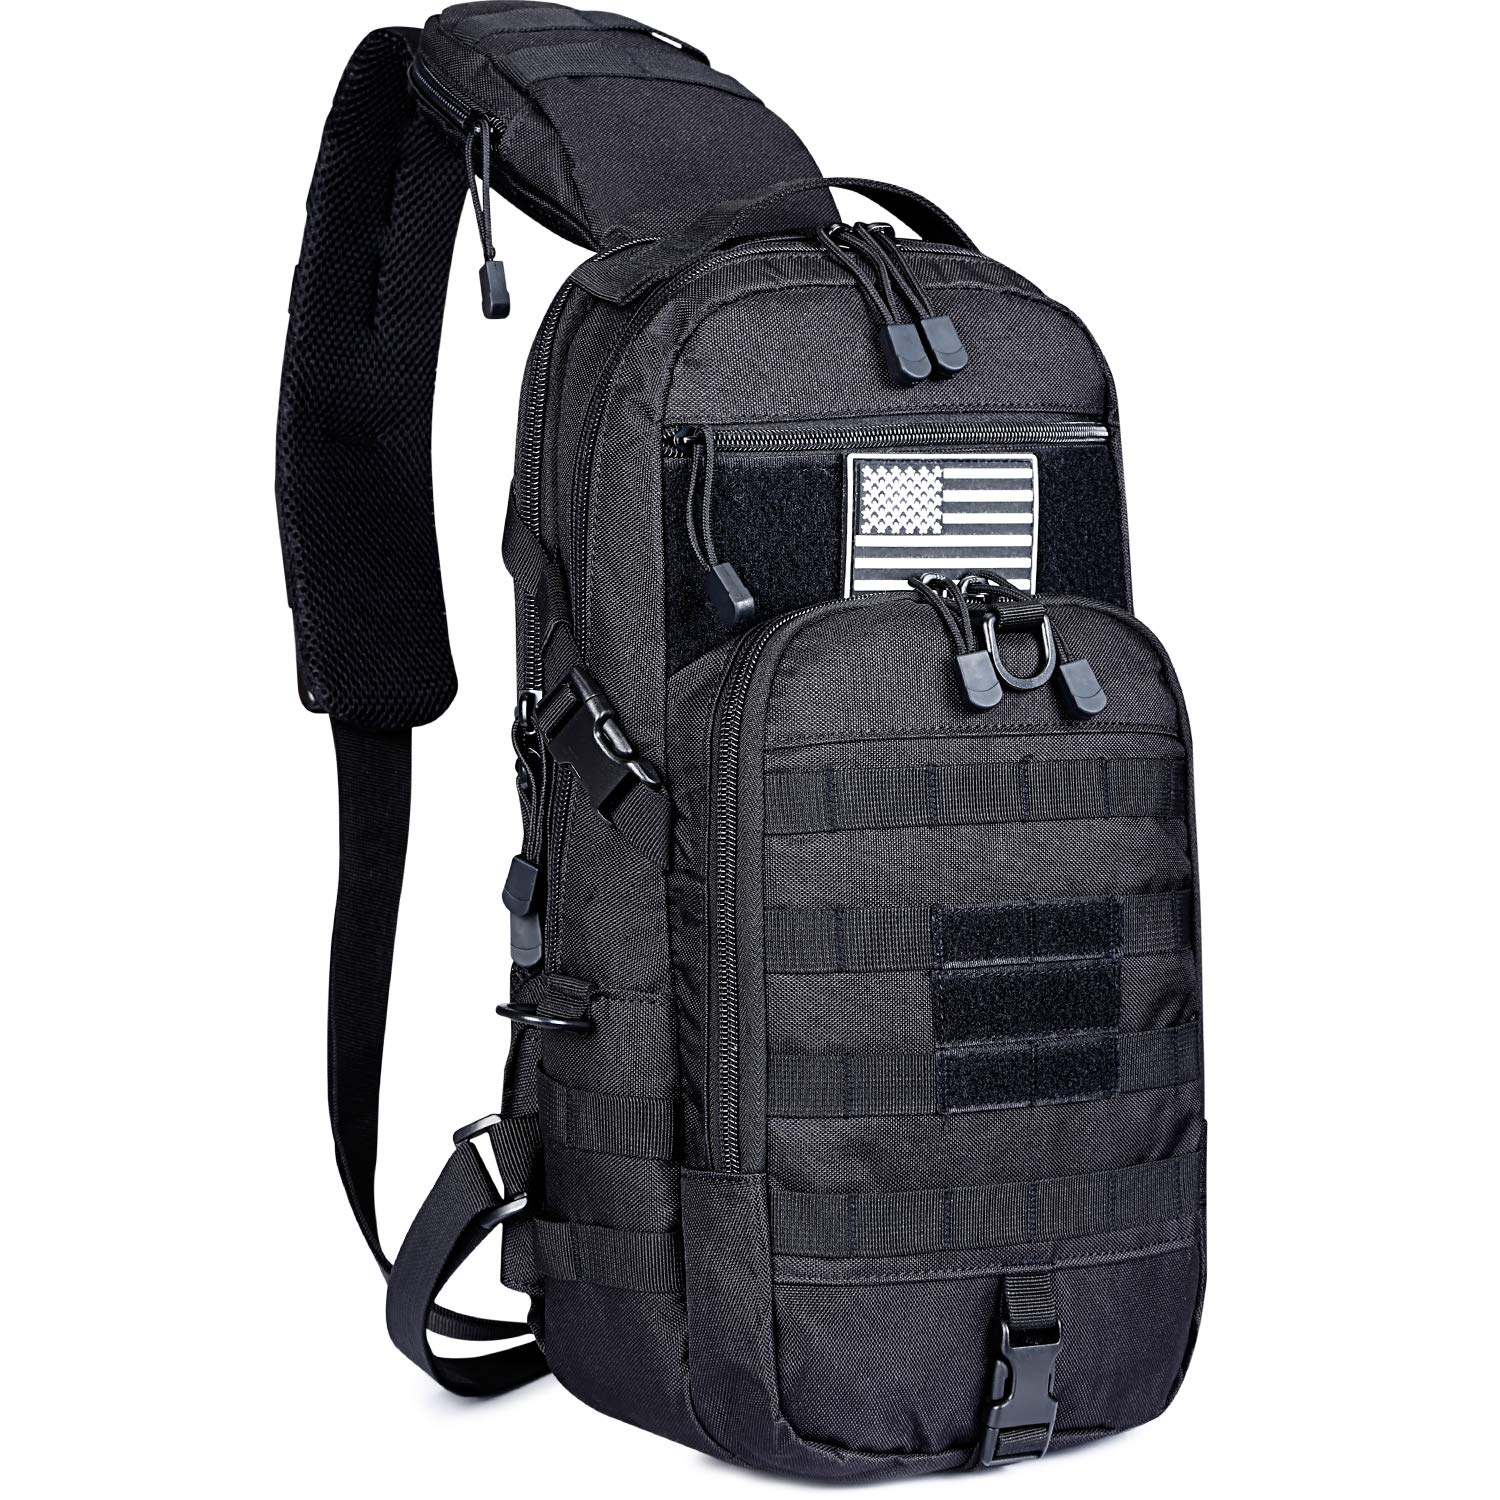 G4Free EDC Bag Tactical Sling Fishing Tackle Molle Chest Shoulder Pack Rectangular Outdoor Daypack